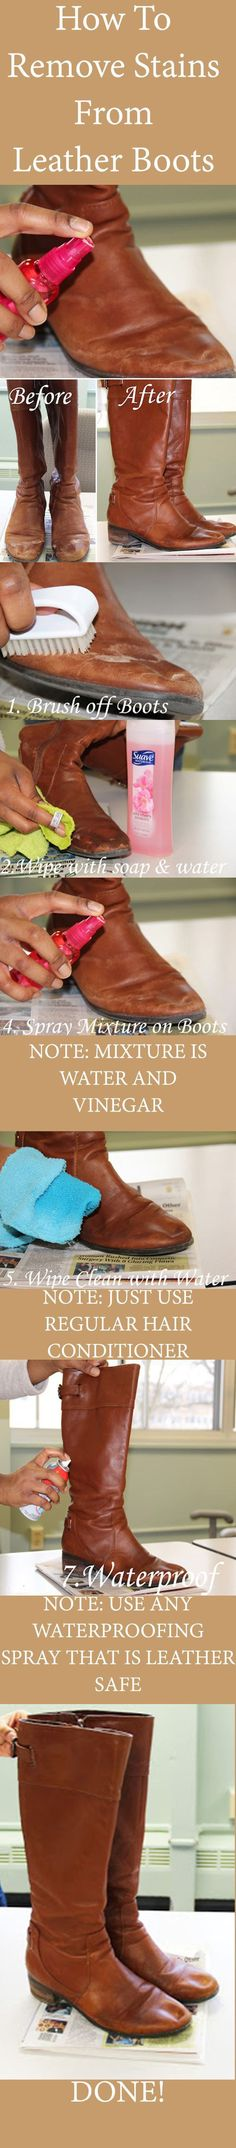 No matter how neat and organized you are, there comes a point when our accessories break, get really dirty, or just look very used – especially when it comes to handbags and shoes, which get worn out very quickly. If you have a handbag you love and use daily, it's only a matter of time … Read More